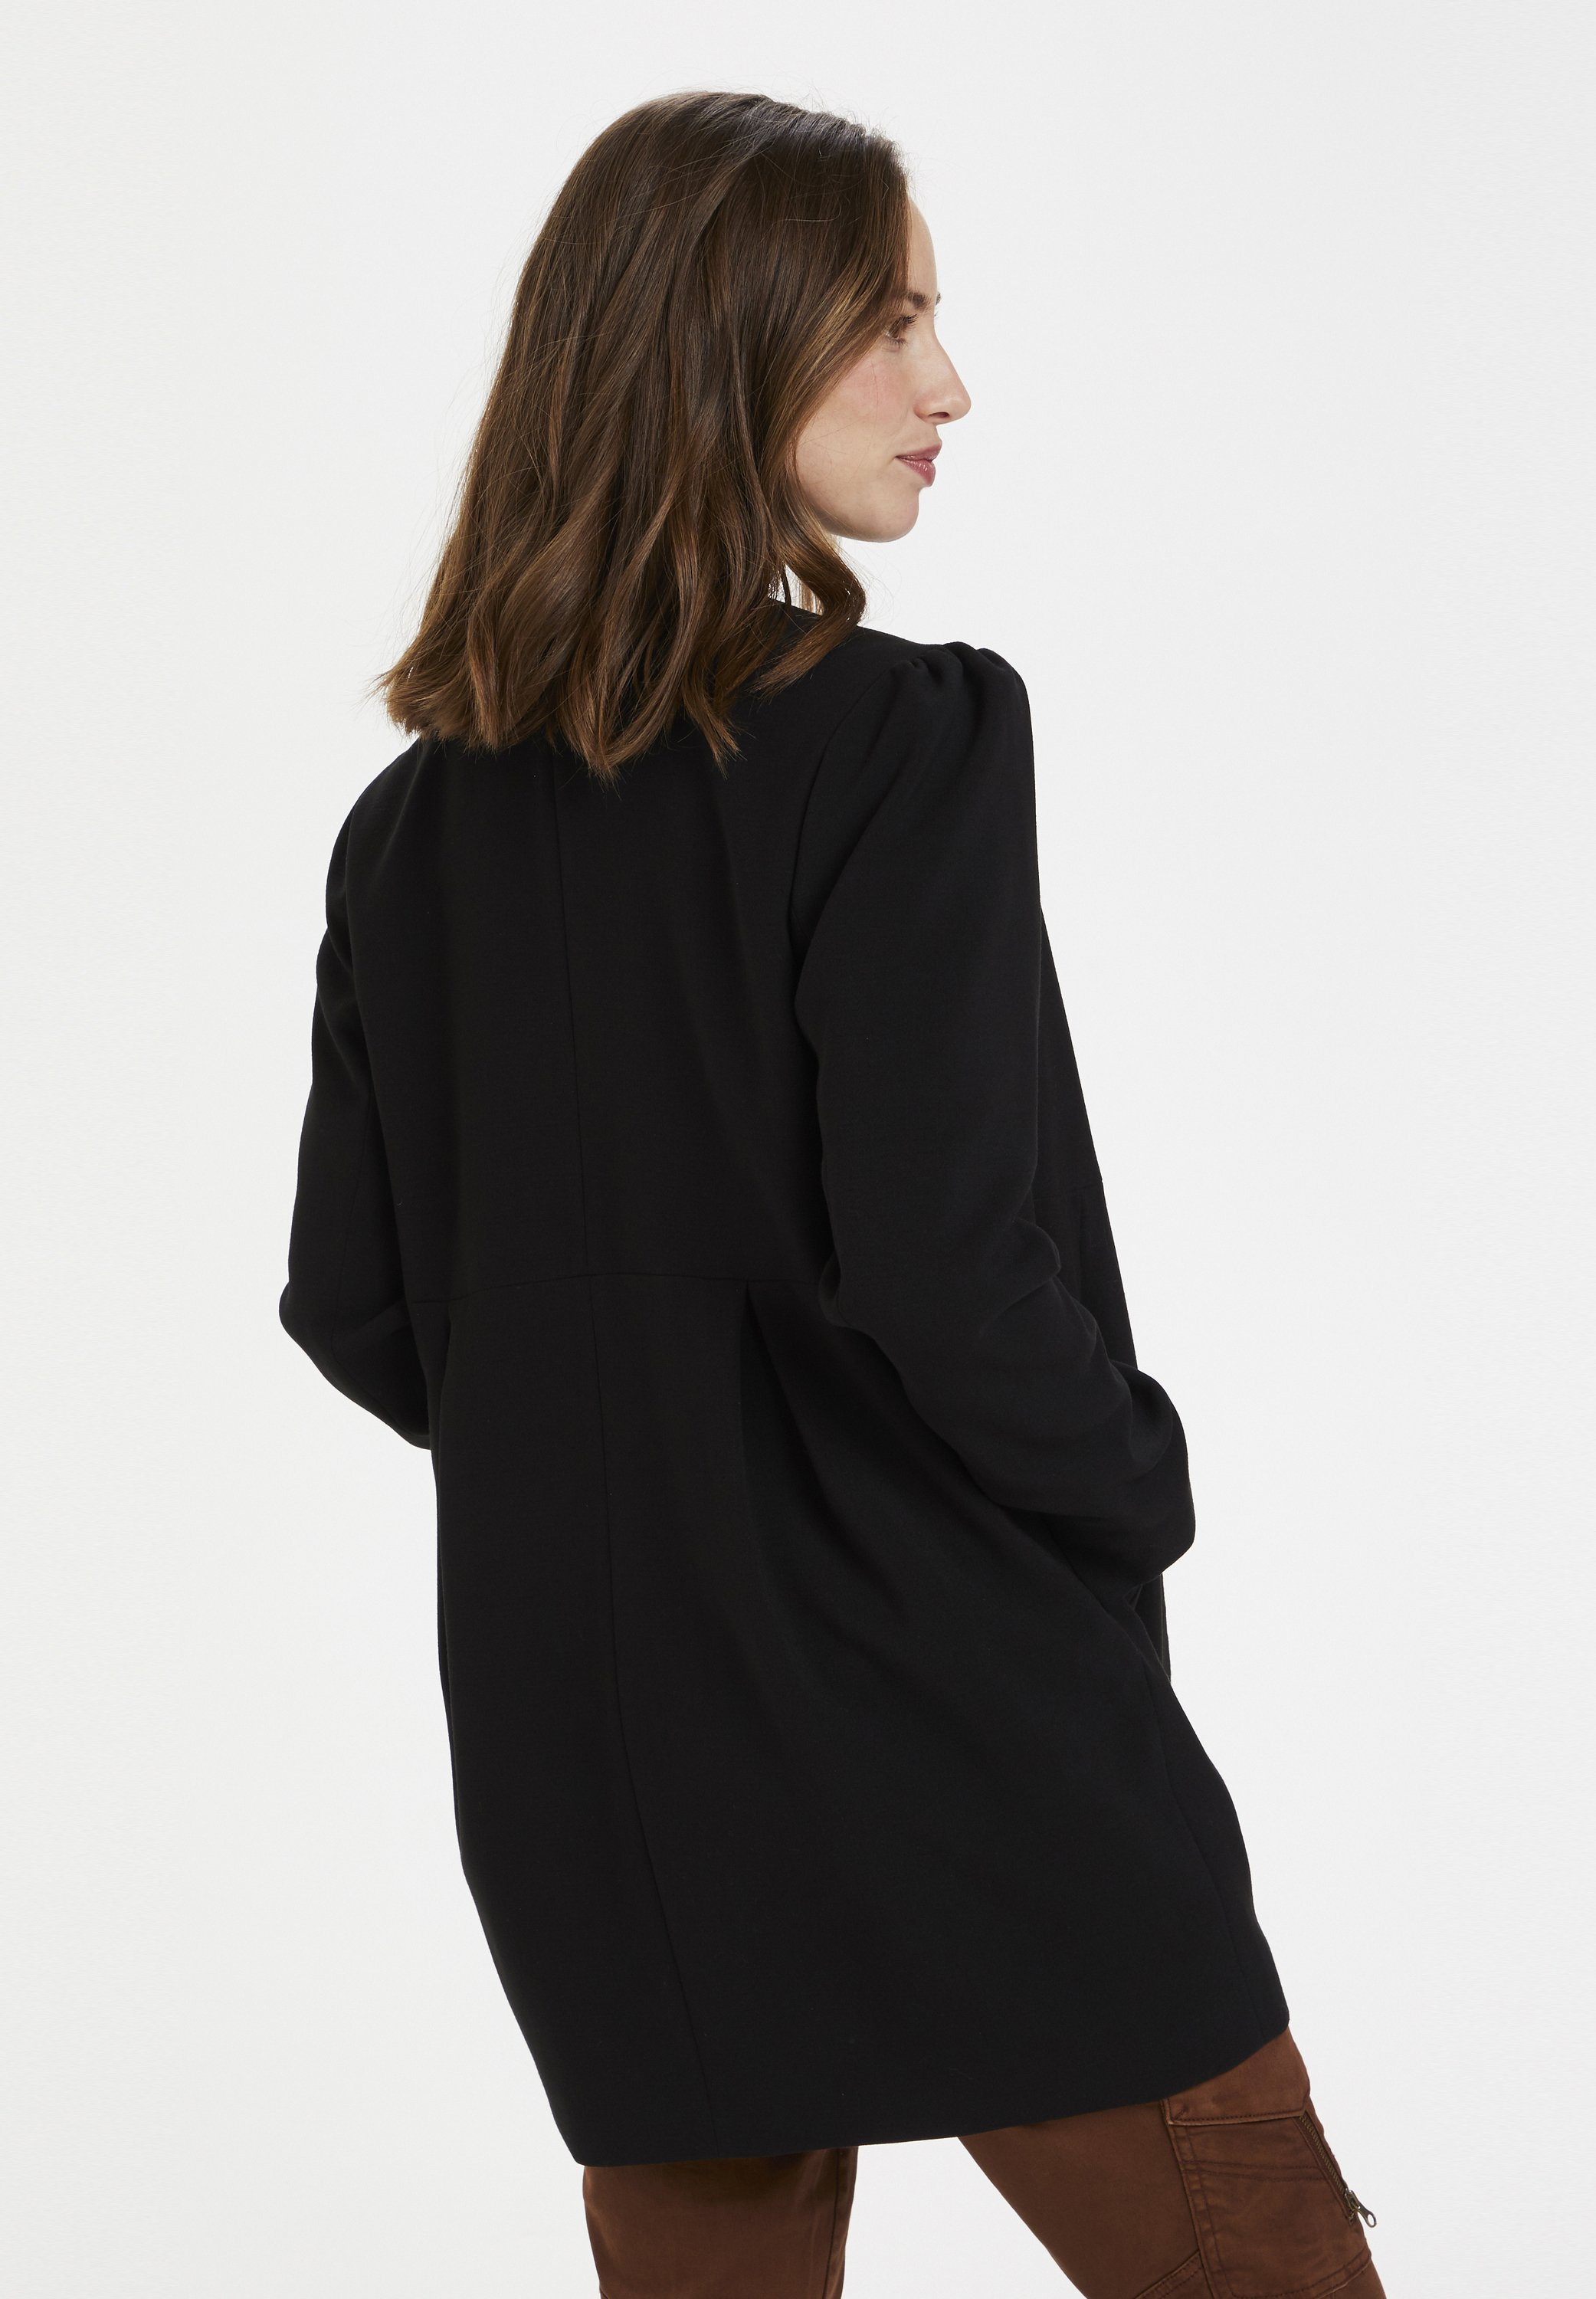 Culture CUELENORA  - Manteau court - black - Manteaux Femme K5PM4